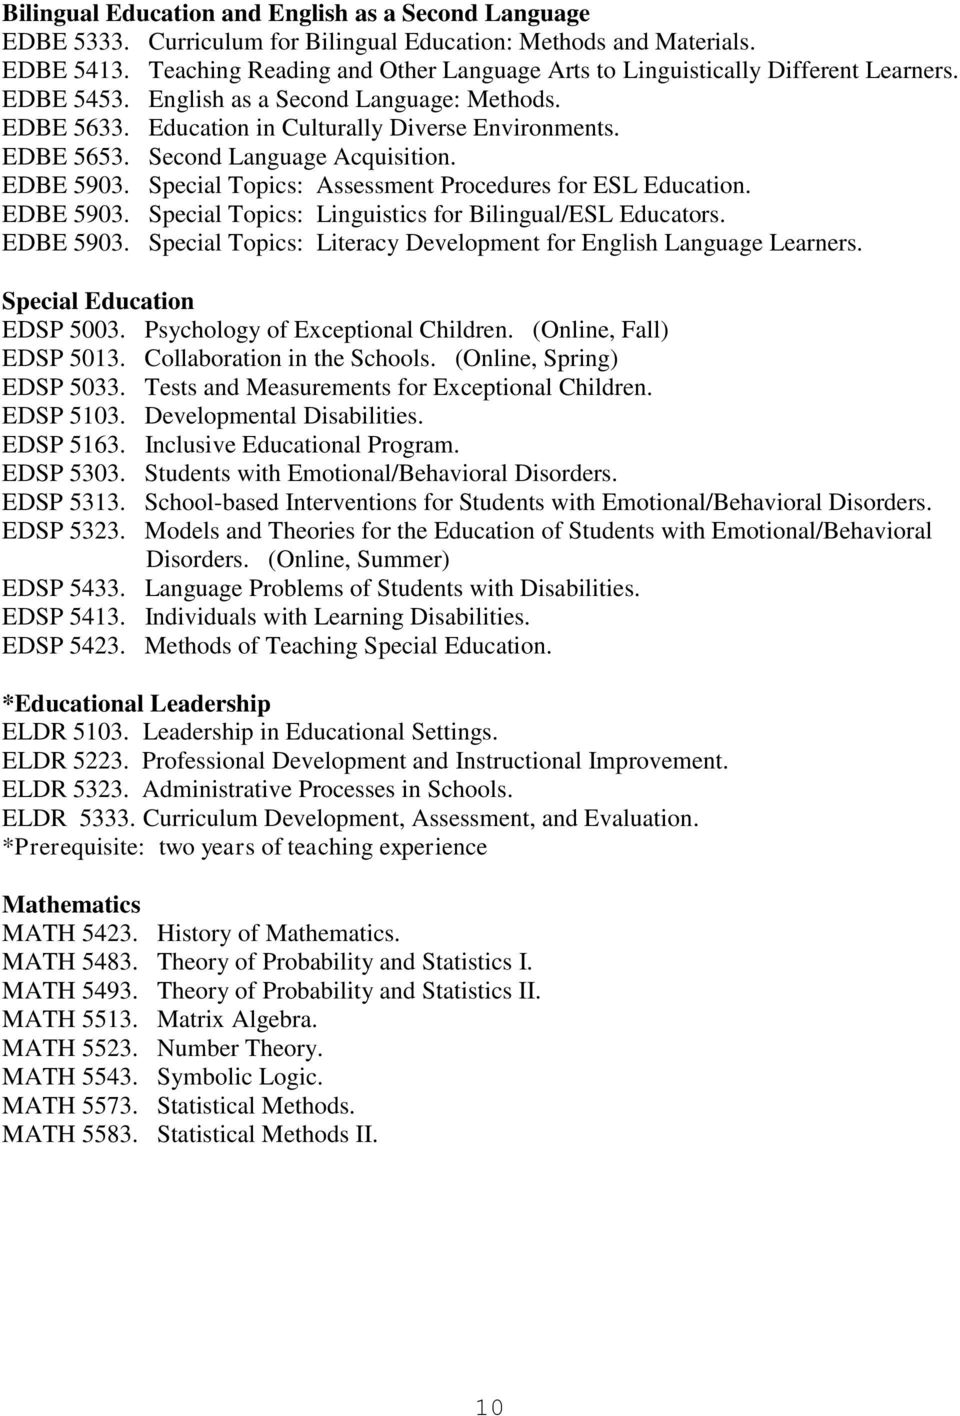 Second Language Acquisition. EDBE 5903. Special Topics: Assessment Procedures for ESL Education. EDBE 5903. Special Topics: Linguistics for Bilingual/ESL Educators. EDBE 5903. Special Topics: Literacy Development for English Language Learners.